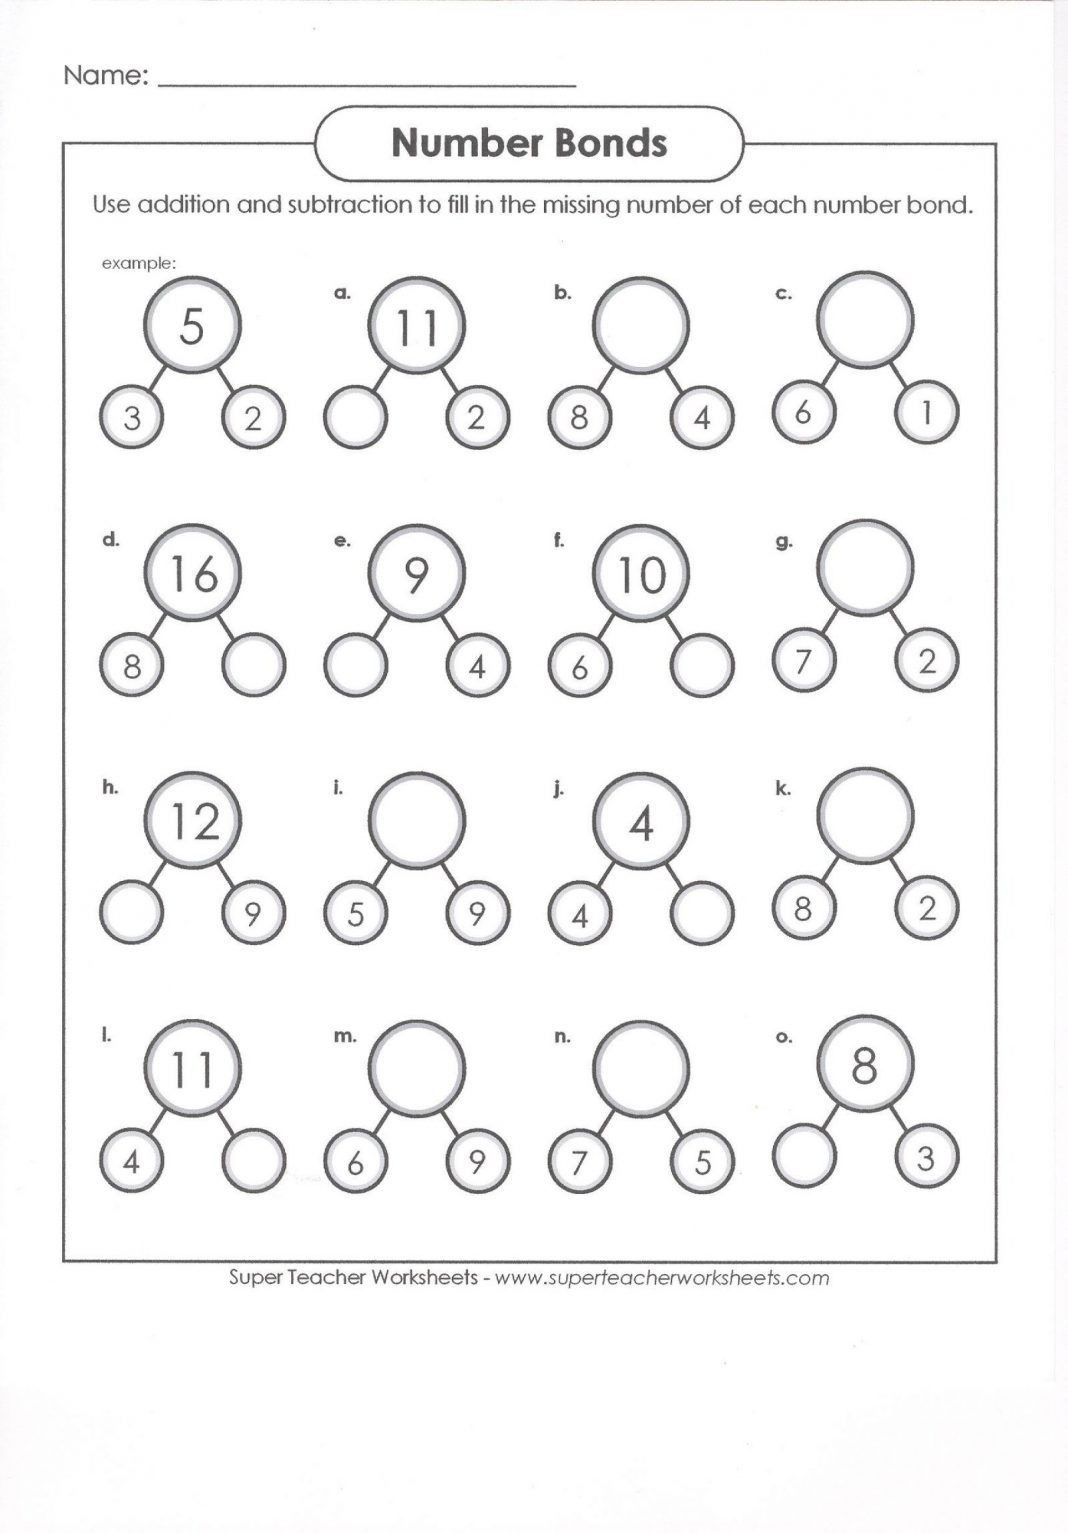 Expanded form Worksheets 1st Grade 40 Clever 1st Grade Math Worksheets Design Bacamajalah In